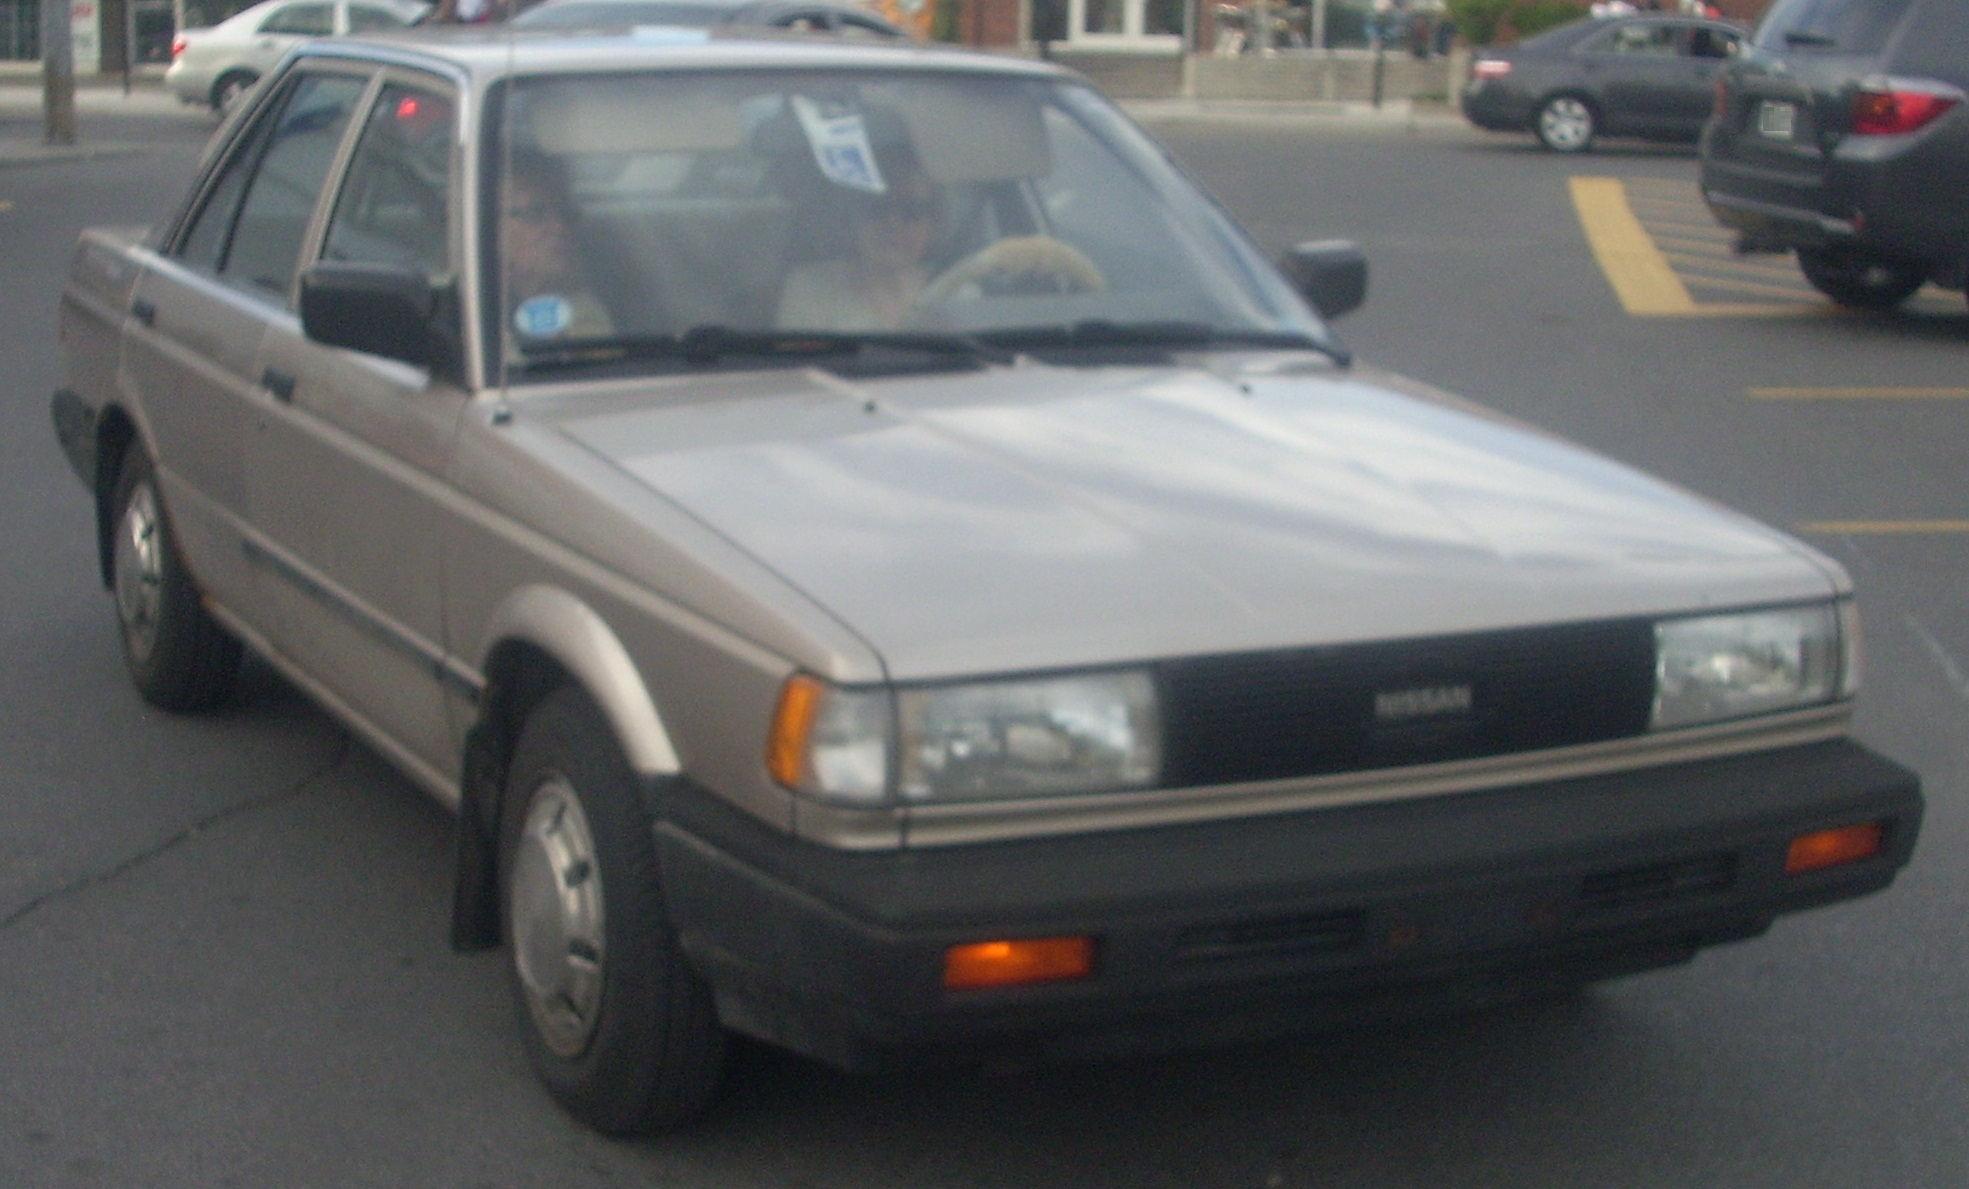 1990 nissan sentra information and photos zombiedrive rh zombdrive com nissan  sentra 1990 manual pdf nissan sentra 1990 manual pdf